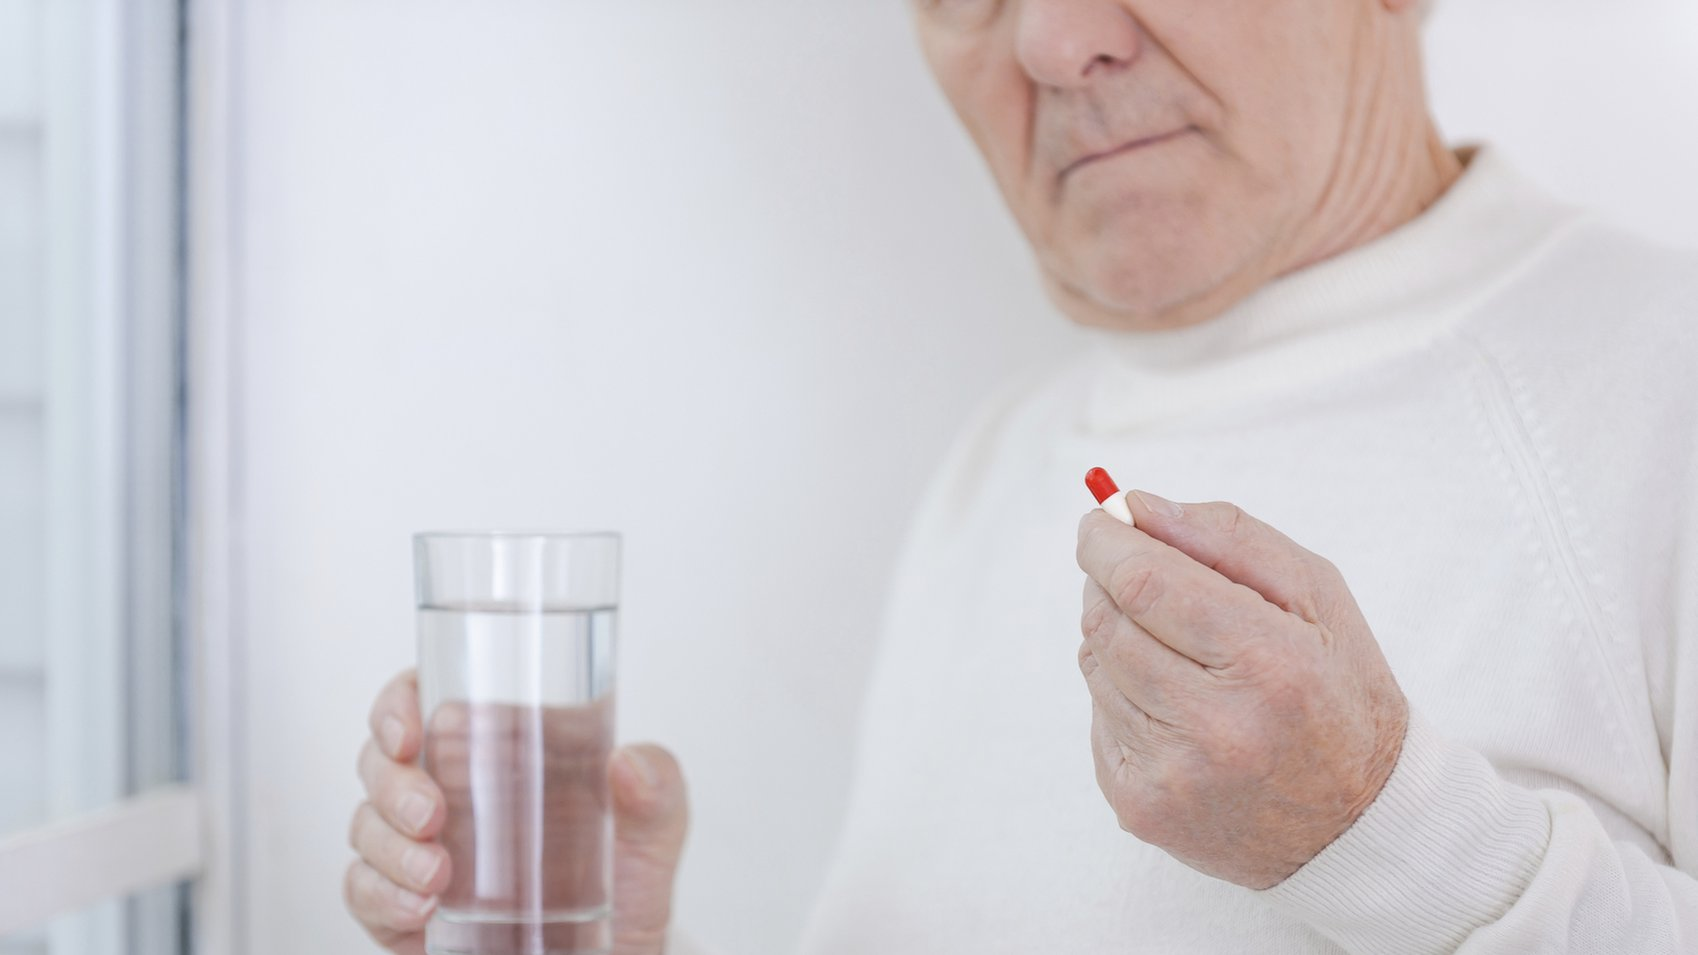 Common painkillers 'increase heart failure risk'